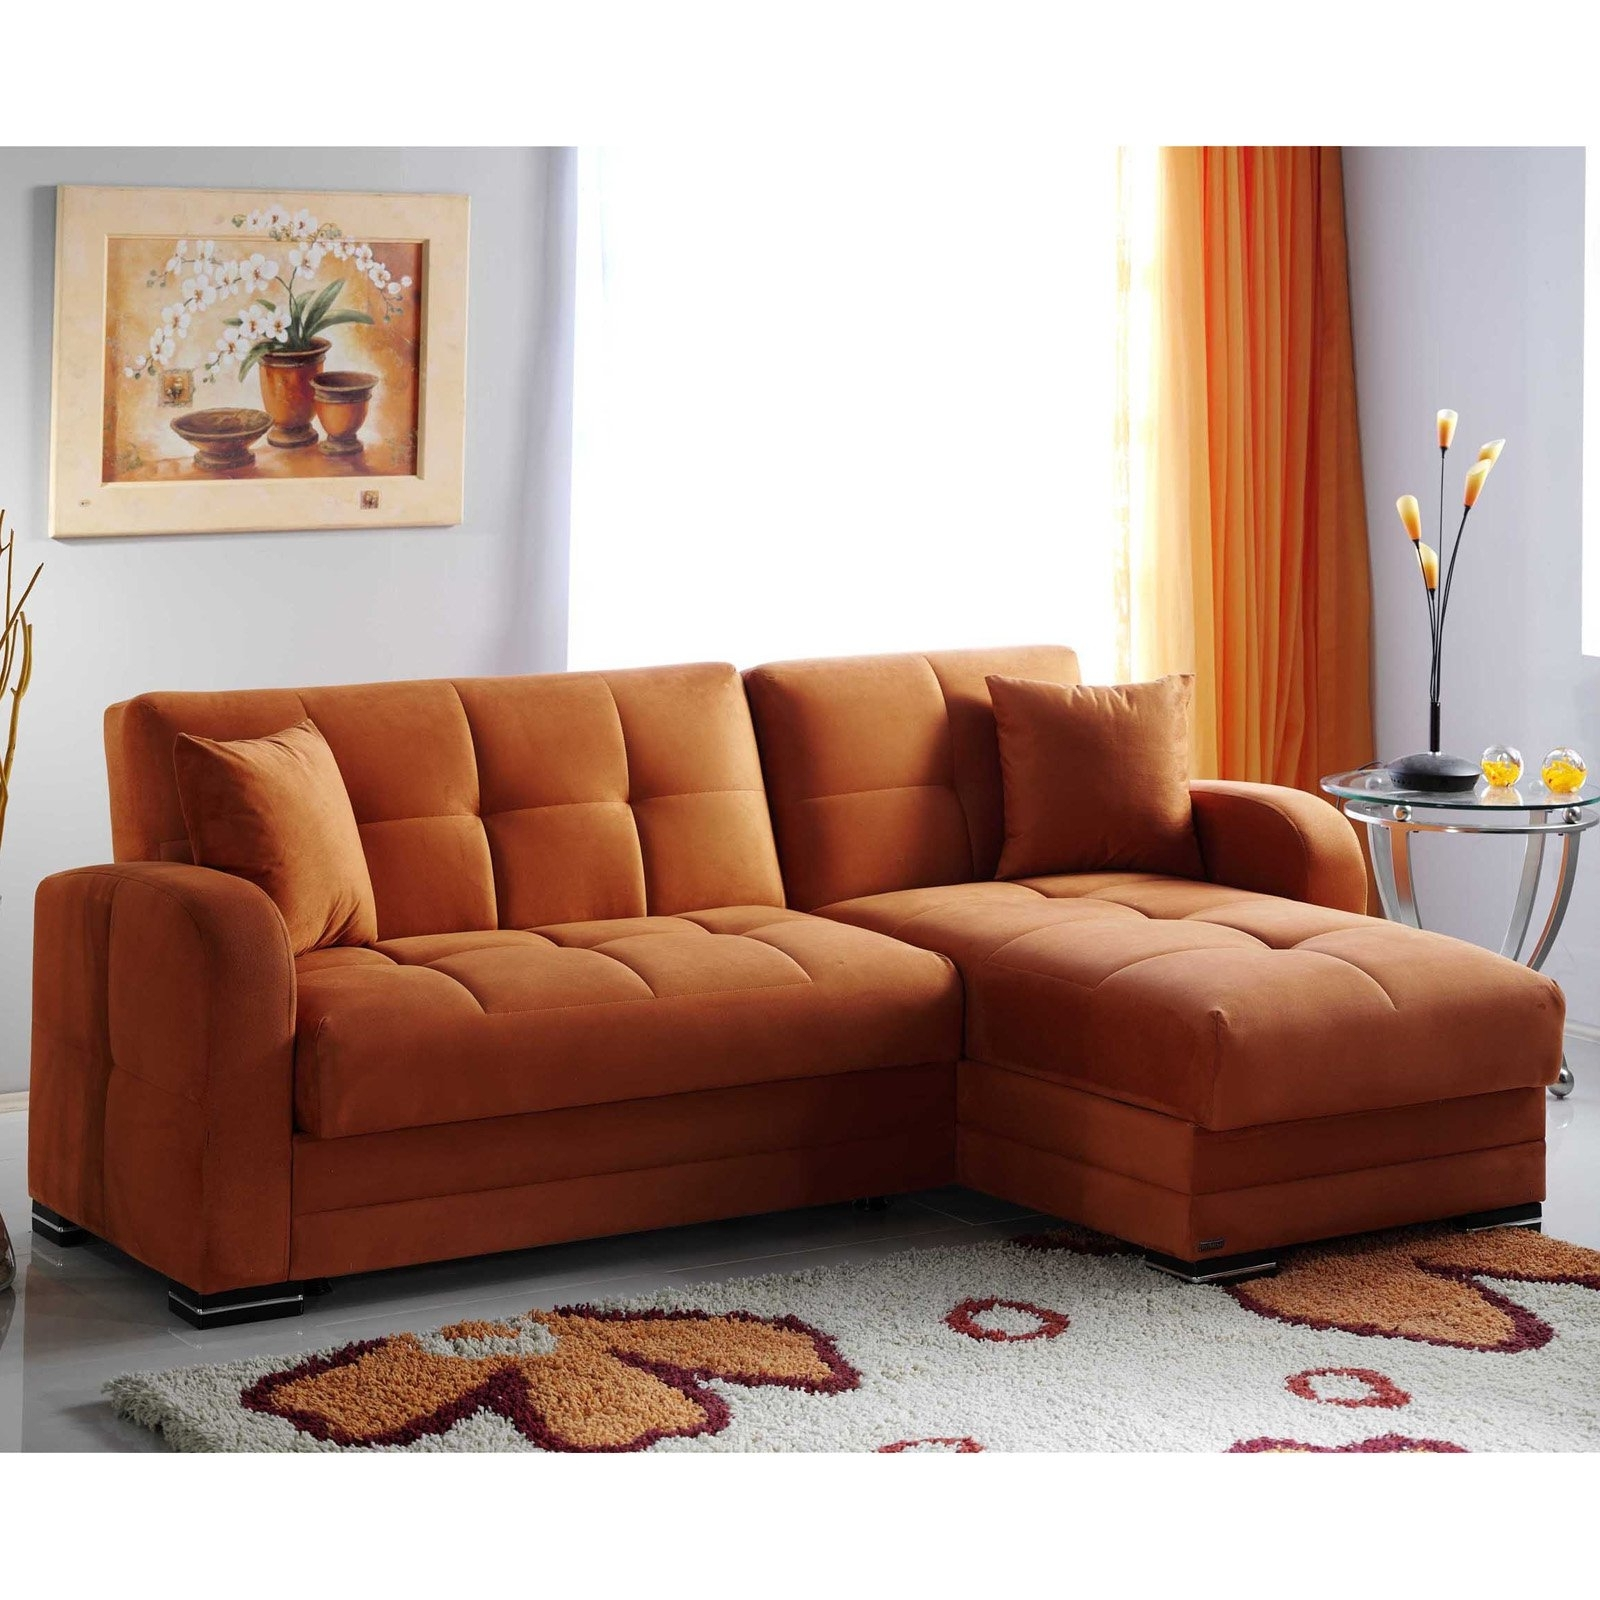 Orange Sectional Sofas With Regard To Favorite Kubo Sectional Sofa (View 11 of 15)